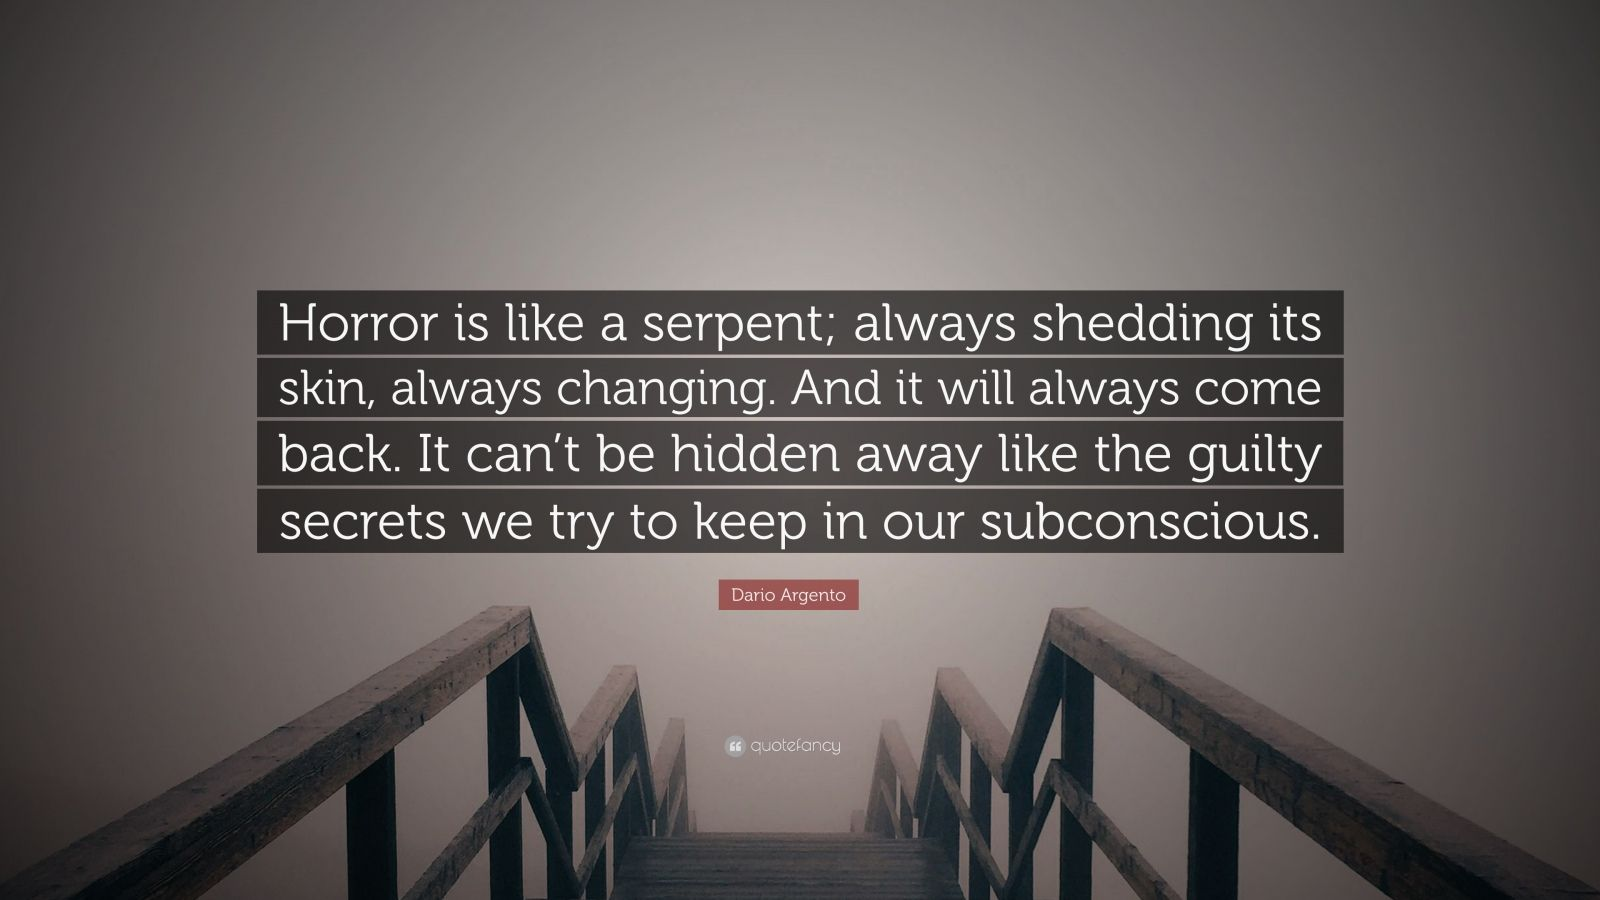 """Dario Argento Quote: """"Horror is like a serpent; always shedding its skin, always changing. And it will always come back. It can't be hidden away like the guilty secrets we try to keep in our subconscious."""""""